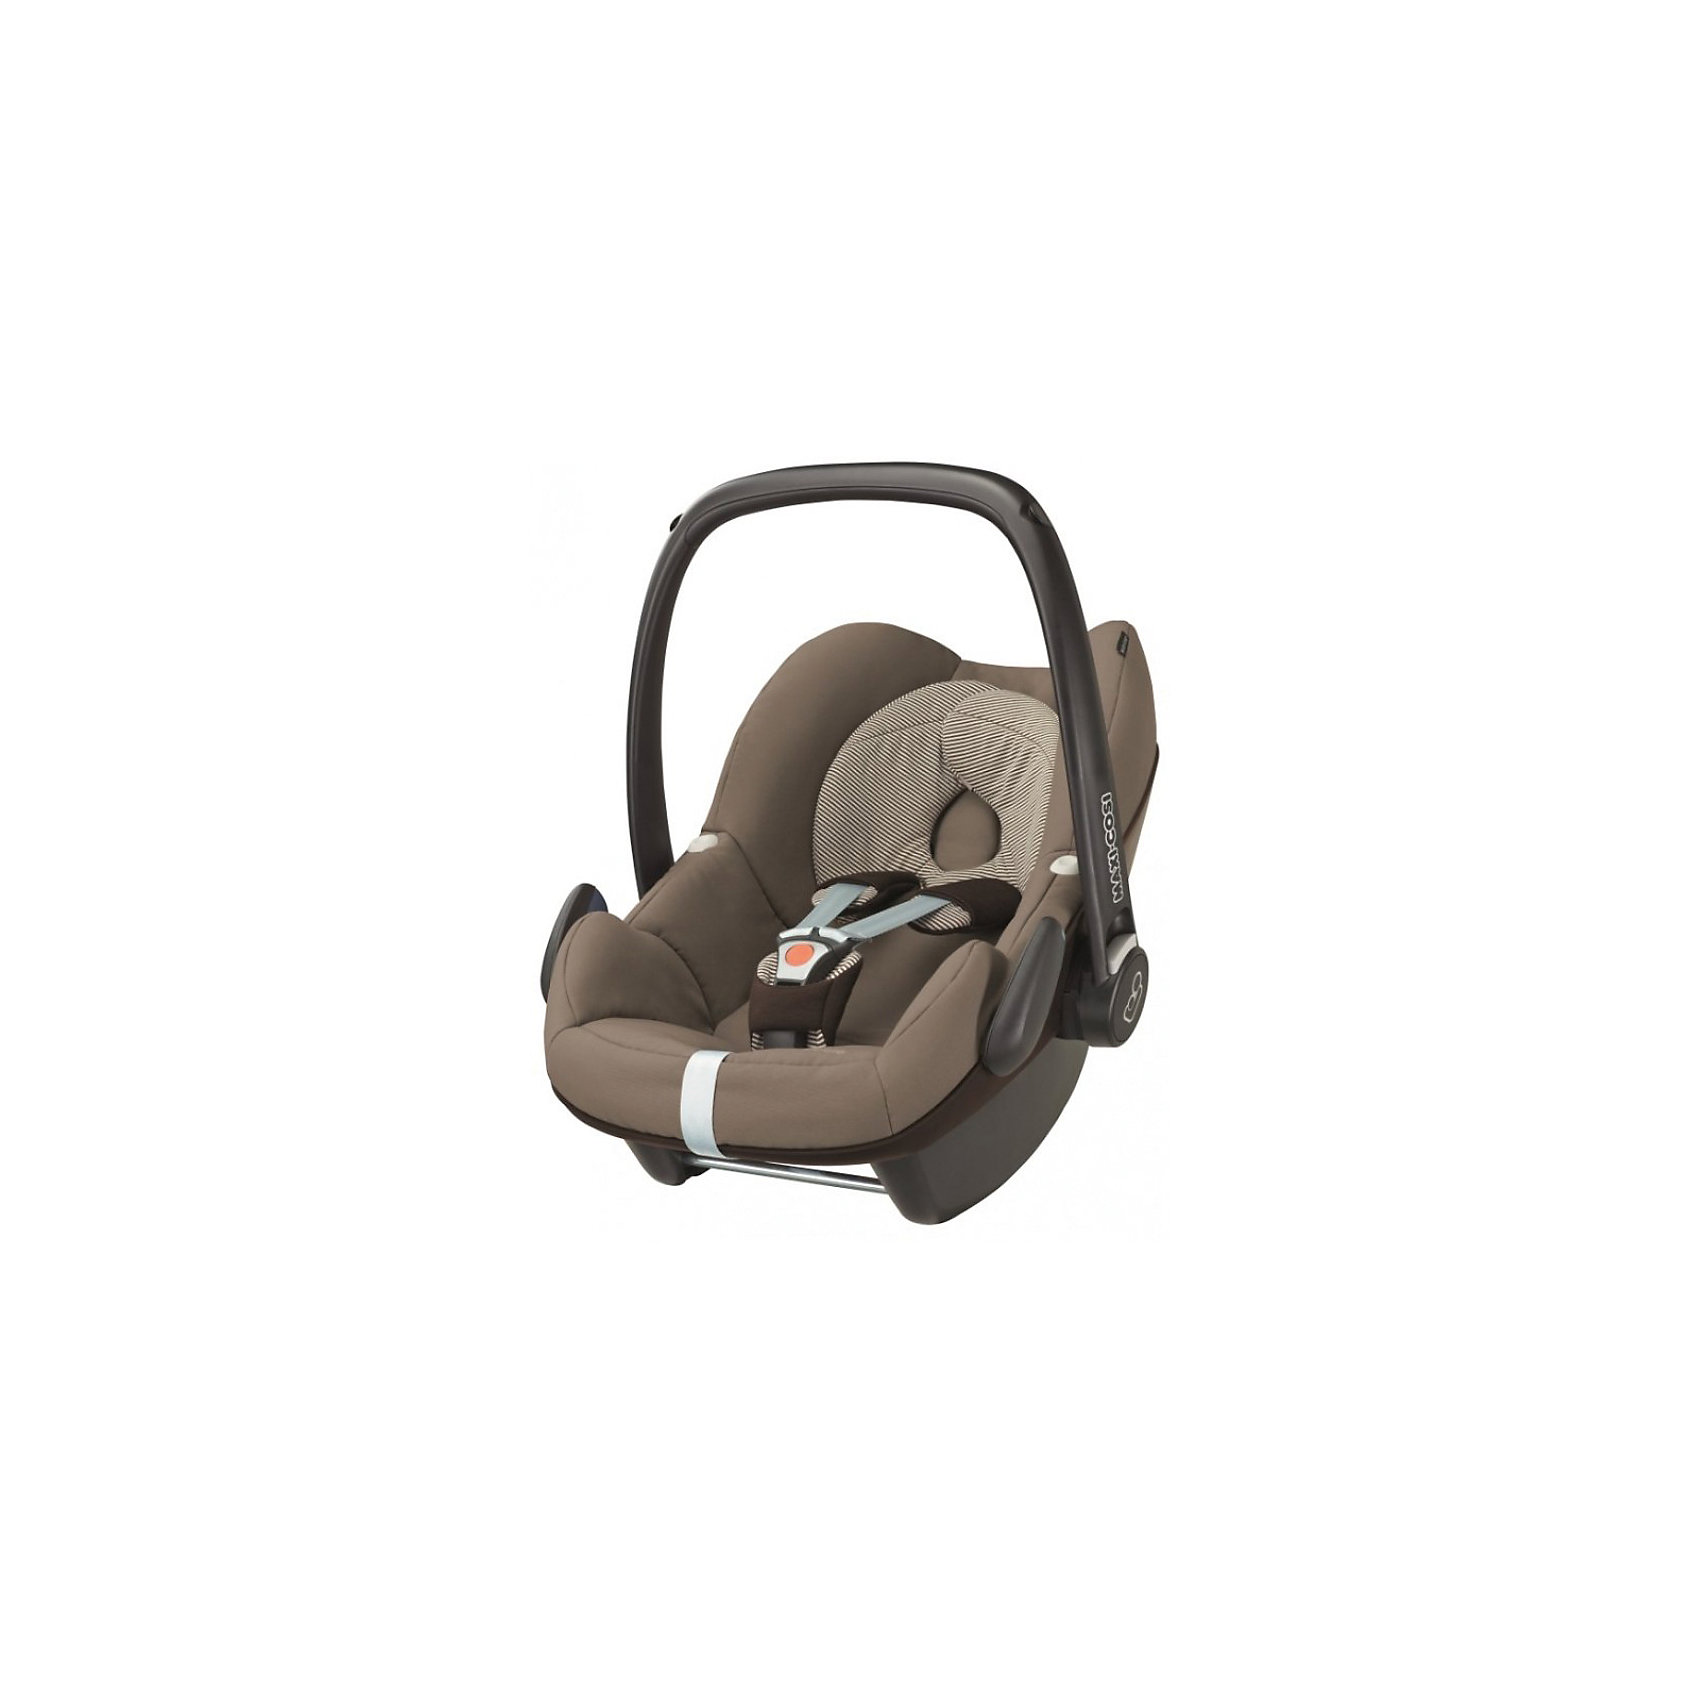 Автокресло Pebble 0-13 кг., Maxi-Cosi, Earth brown